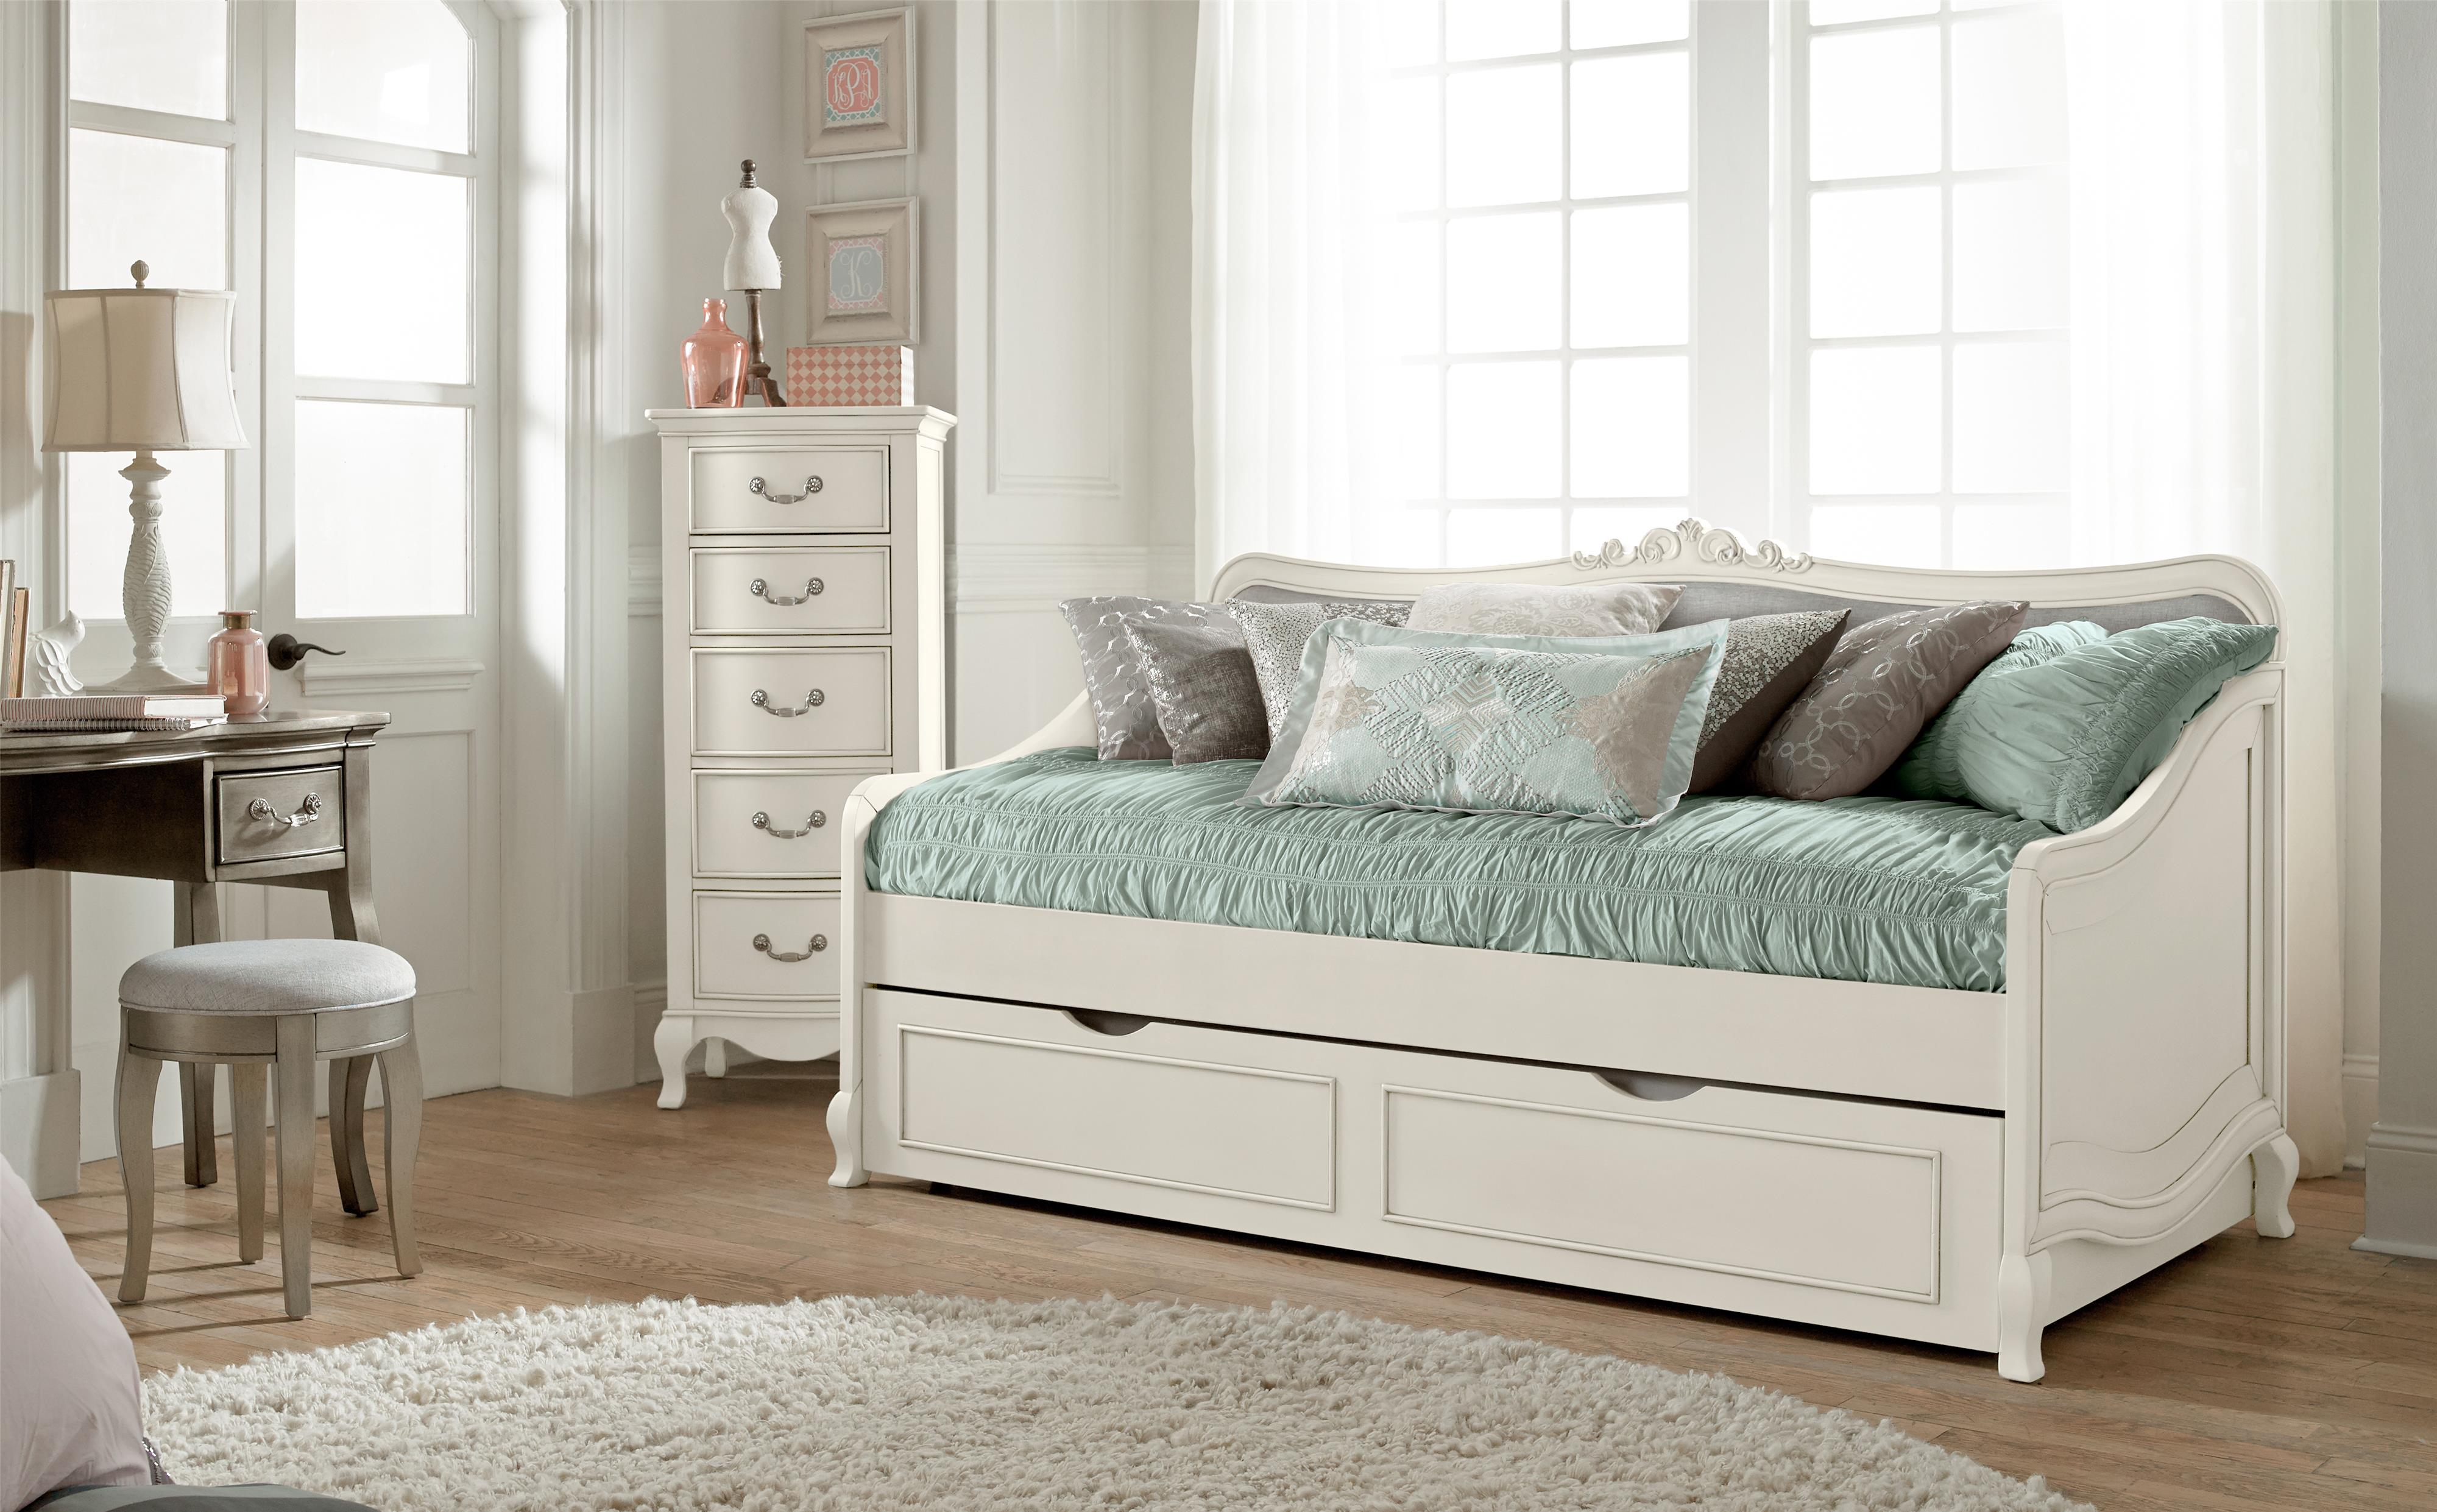 NE Kids Kensington Elizabeth Daybed With Trundle And Scroll Carving    Wayside Furniture   Daybed